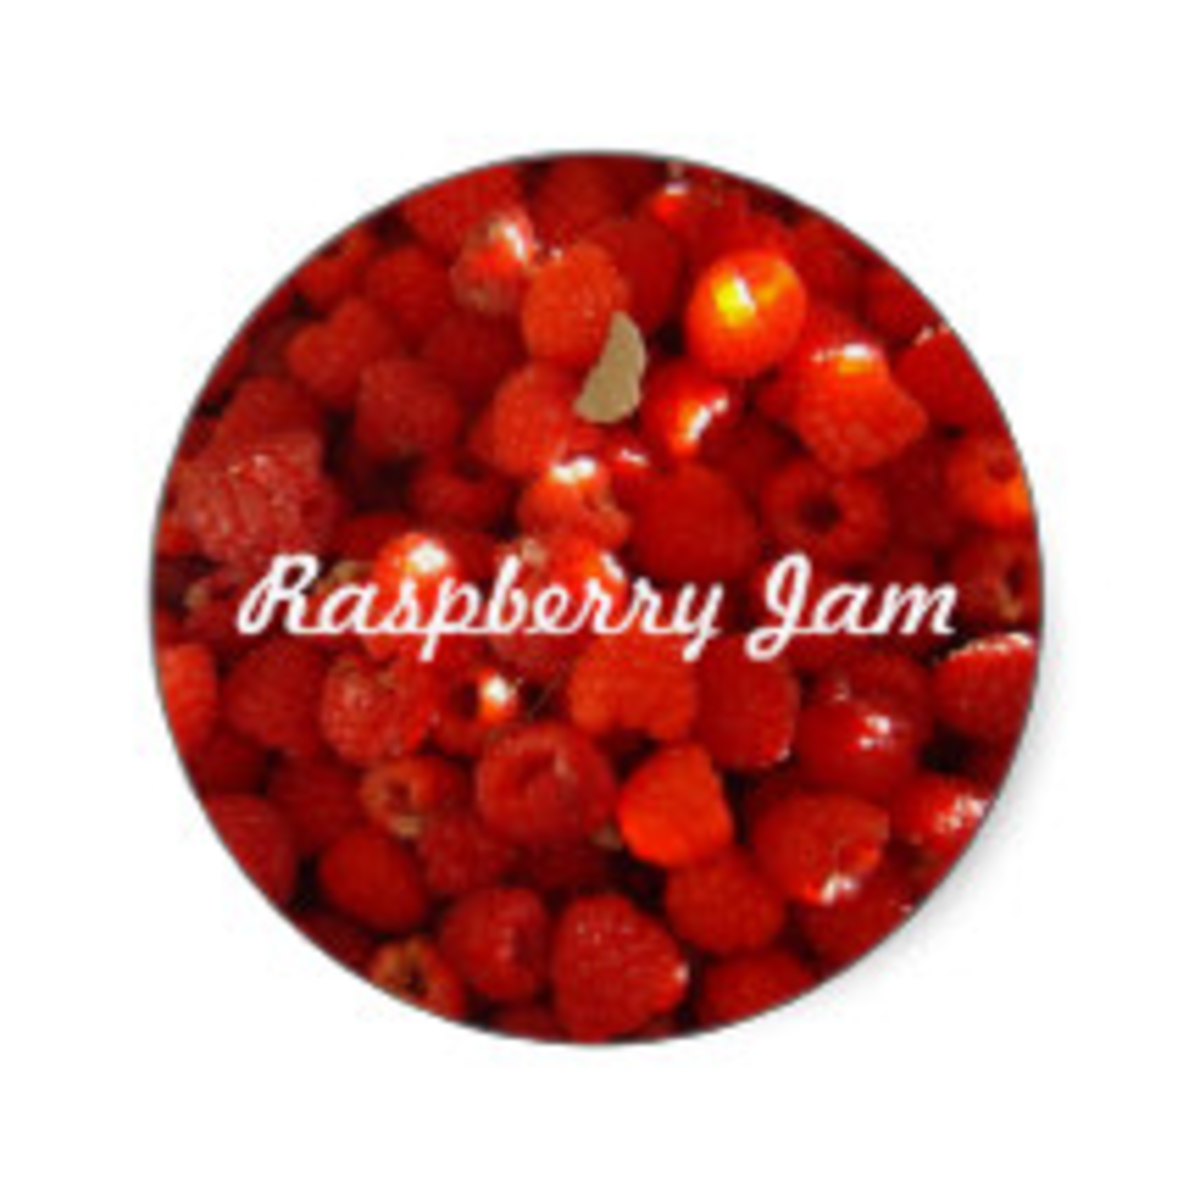 Visit my online Zazzle store for a variety of pretty jam labels which you can customize by adding your own text